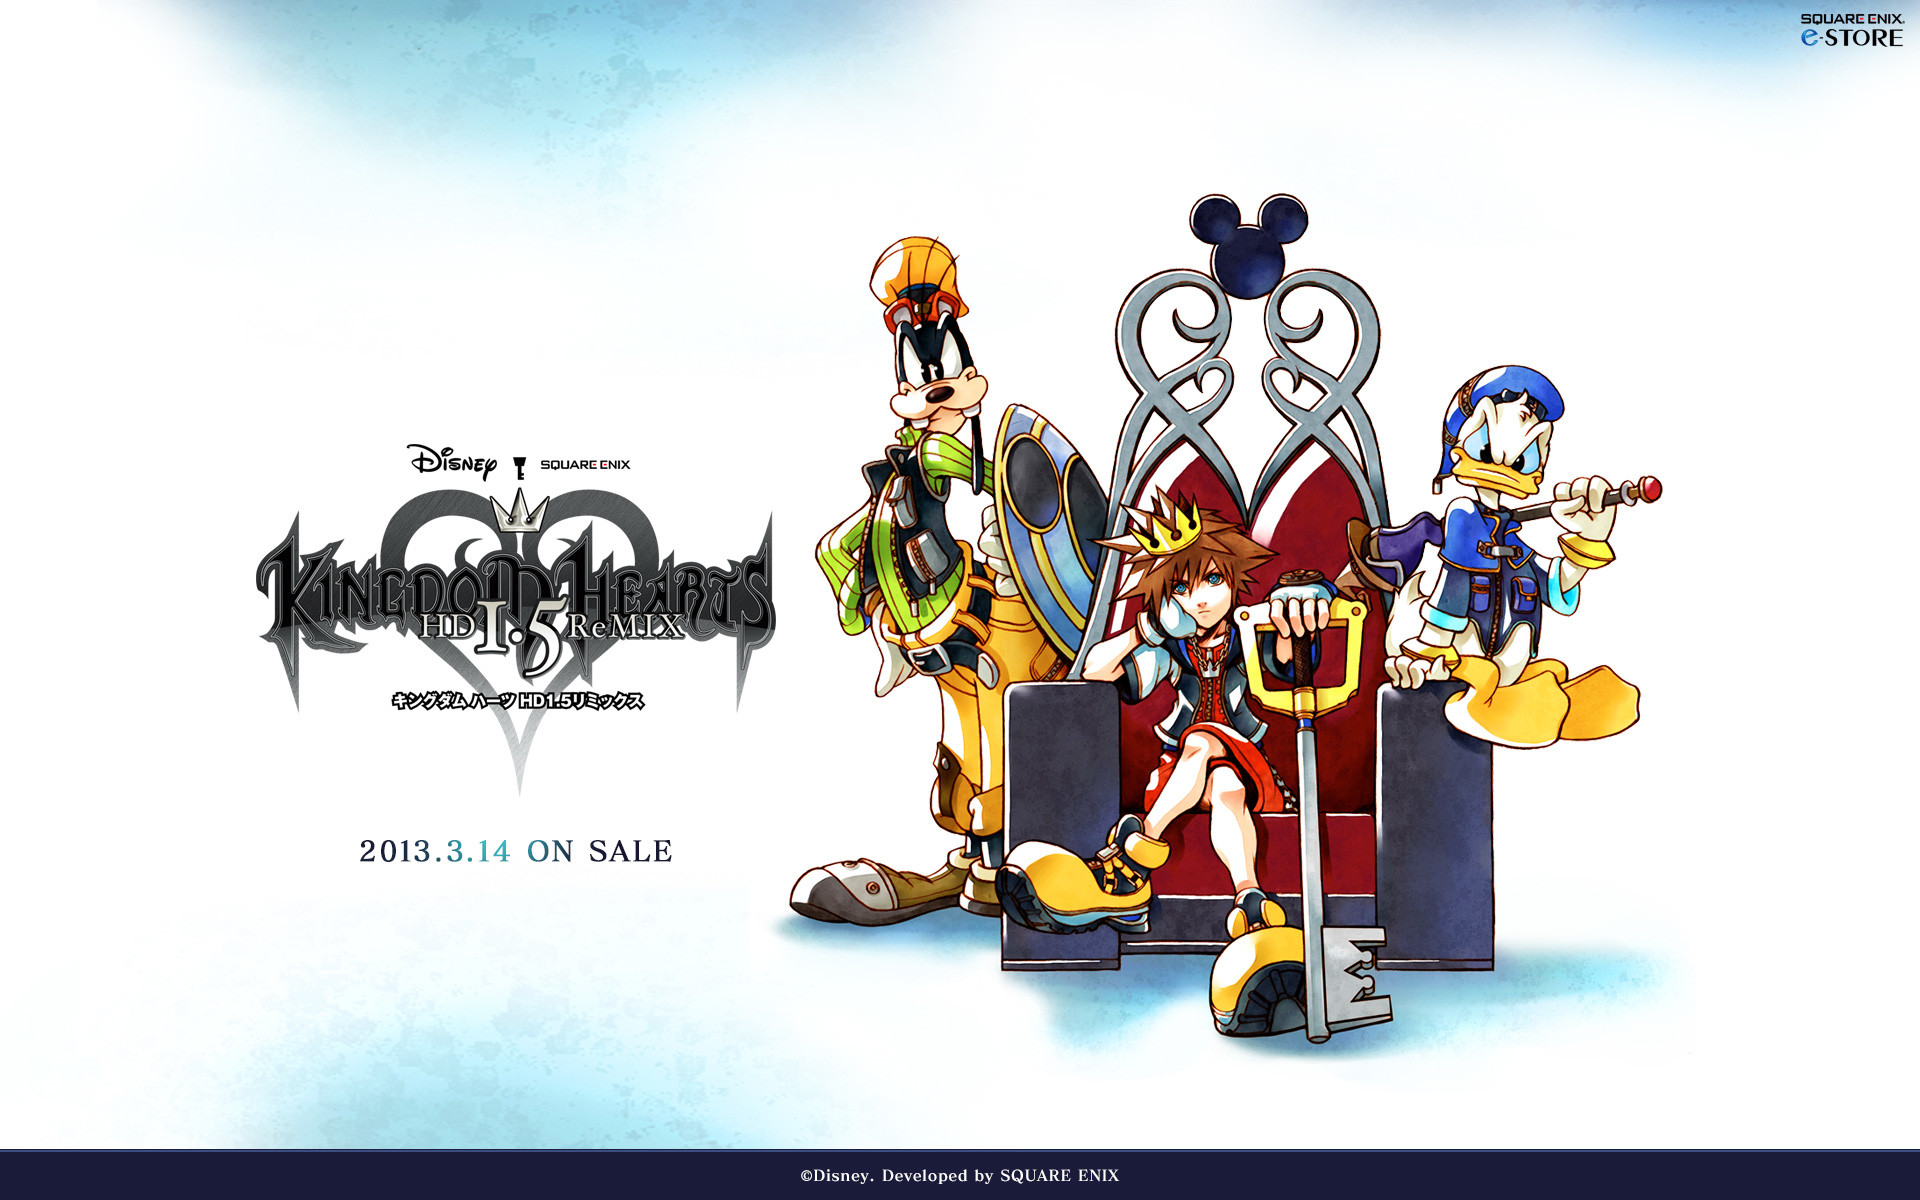 1920x1200 Kingdom Hearts 1.5 HD ReMix 2013 Wallpaper! - News - Kingdom Hearts Insider